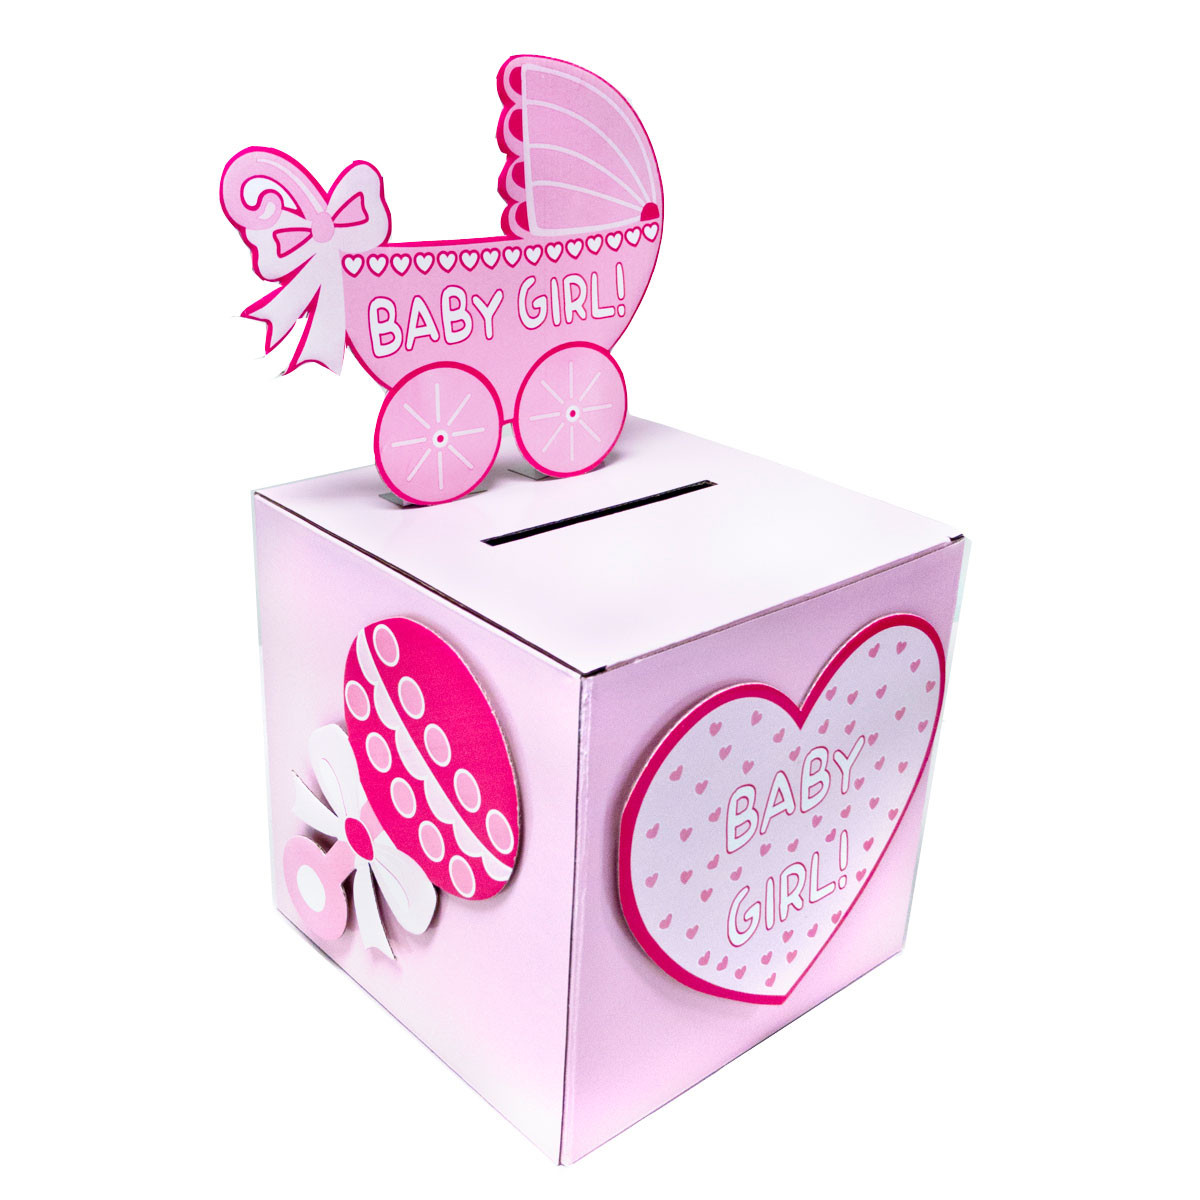 Best ideas about Baby Shower Gift Box Ideas . Save or Pin BabyShower Wishing well card t or money box BOY GIRL Now.